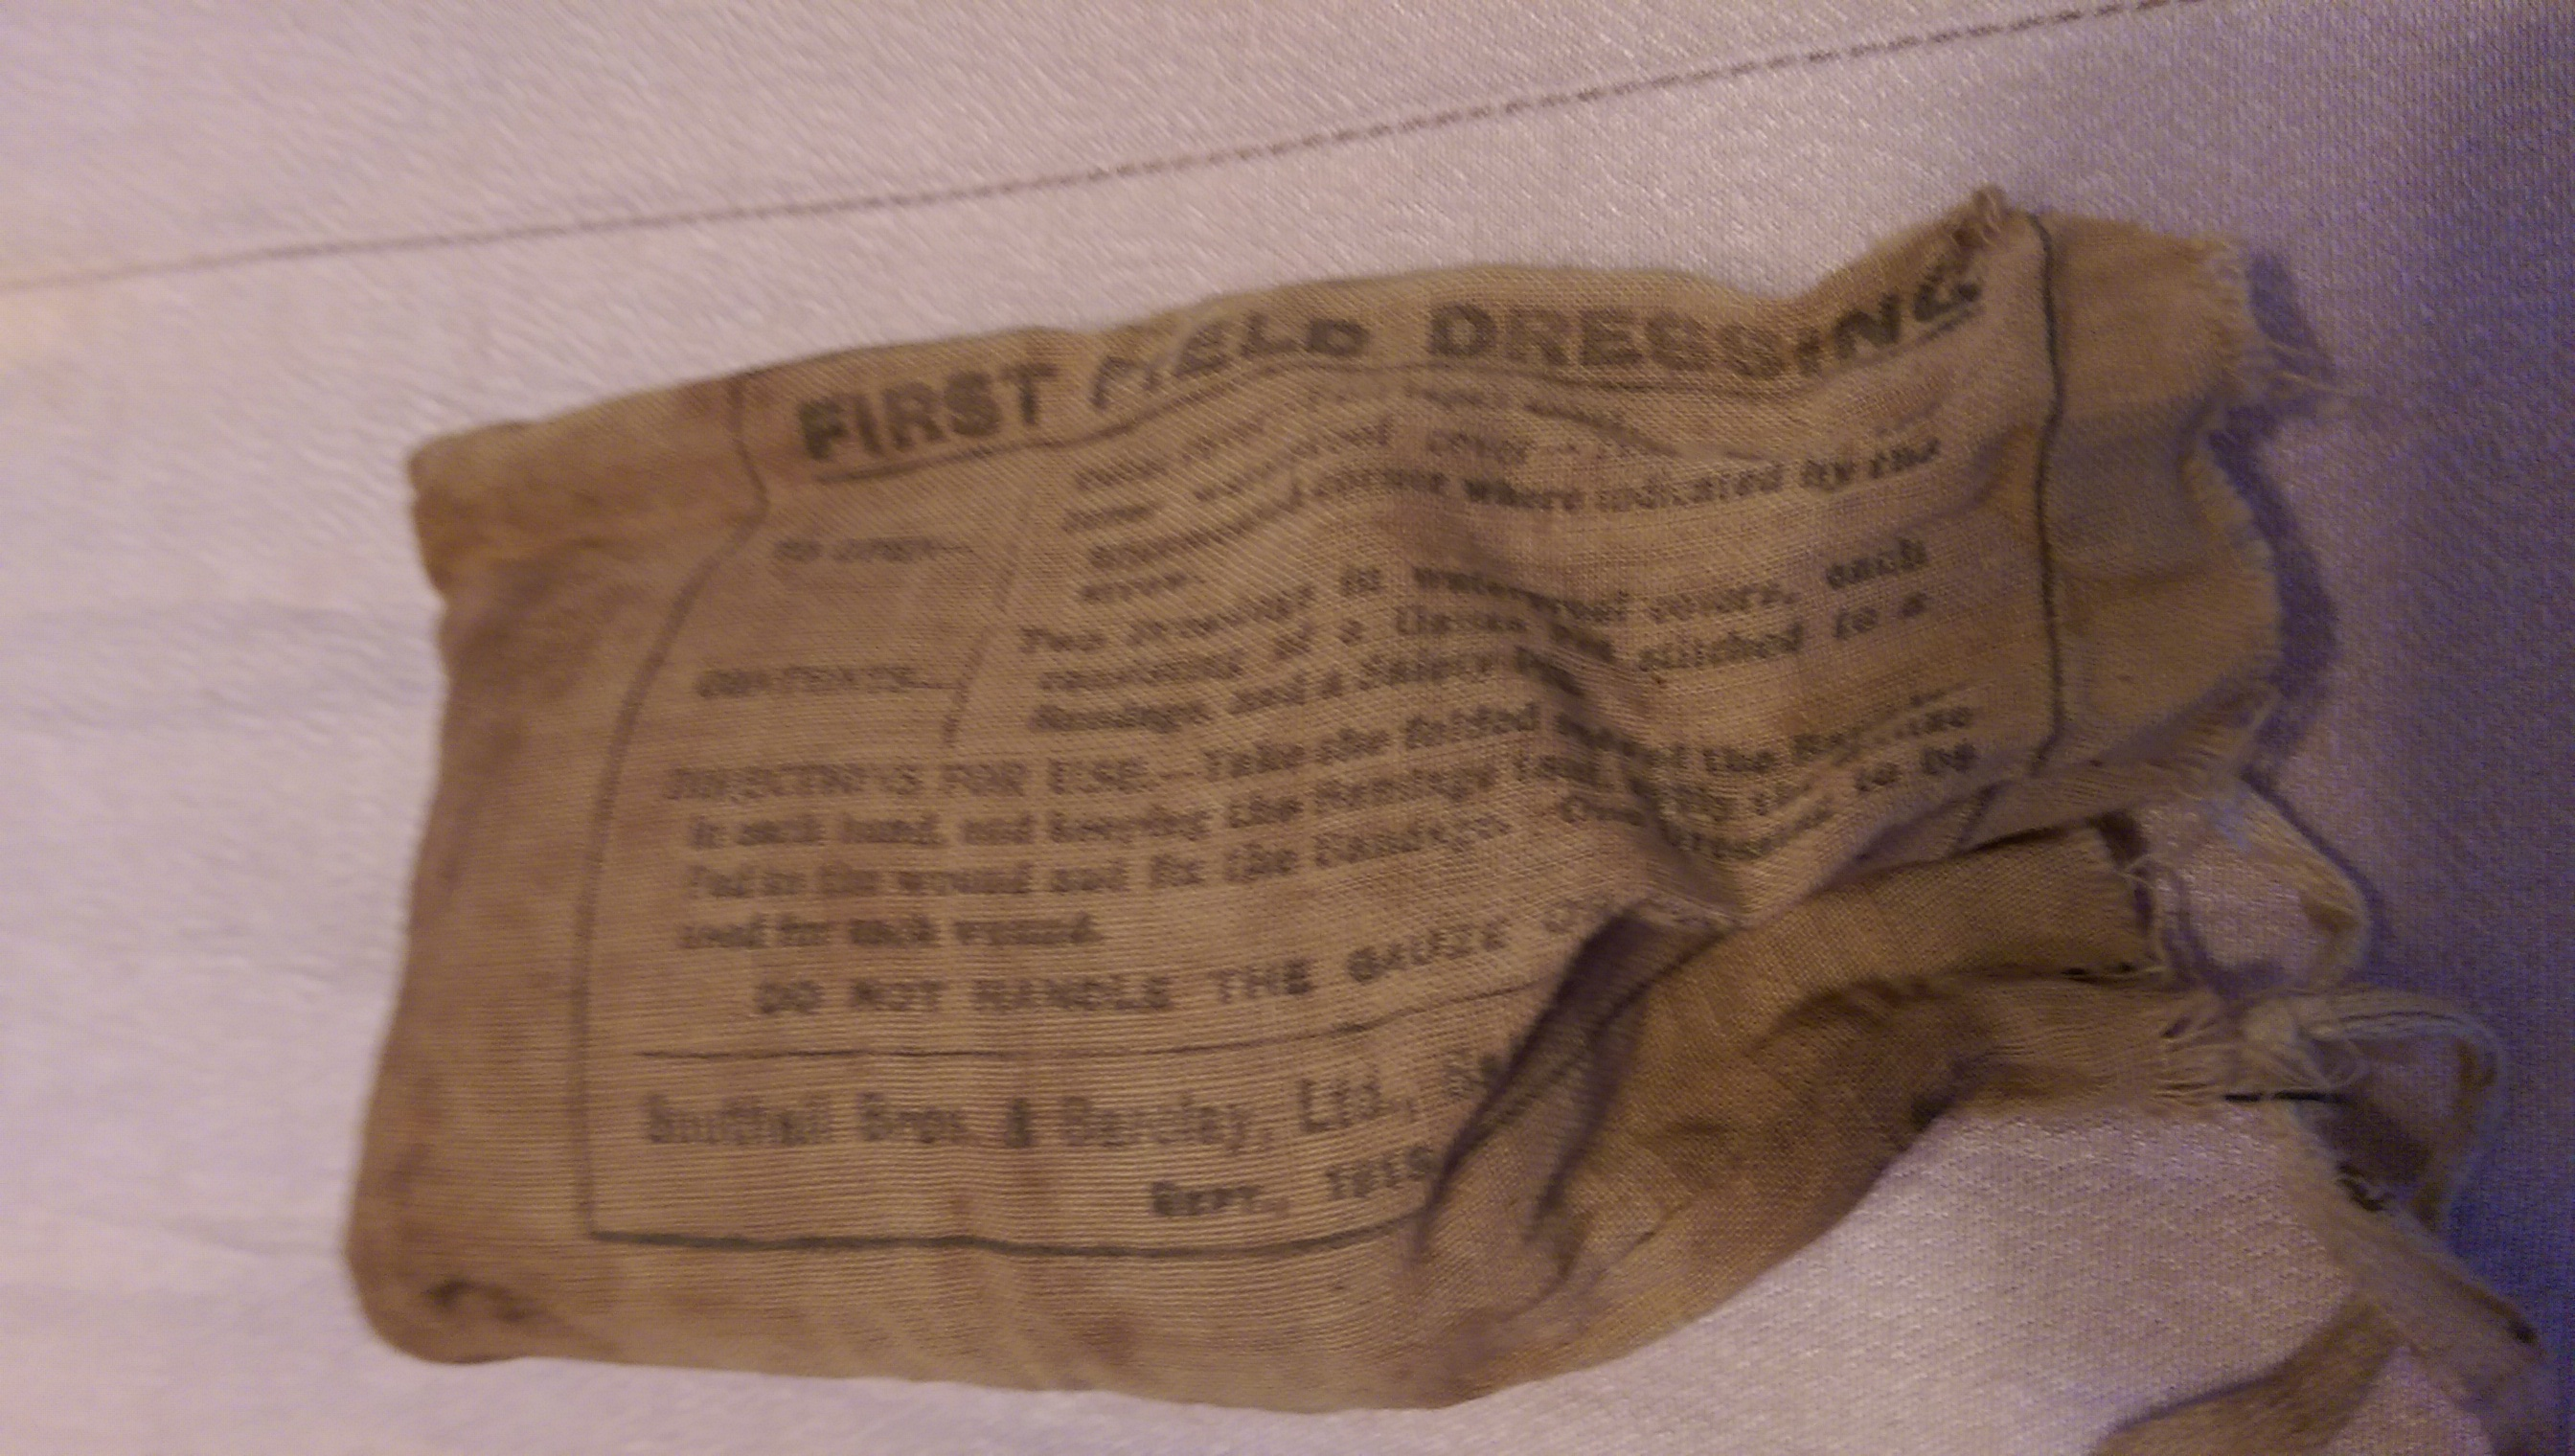 ACTUAL WW1 BADAGE, FROM CLEMENTINA NURSES UNIFORM POCKET